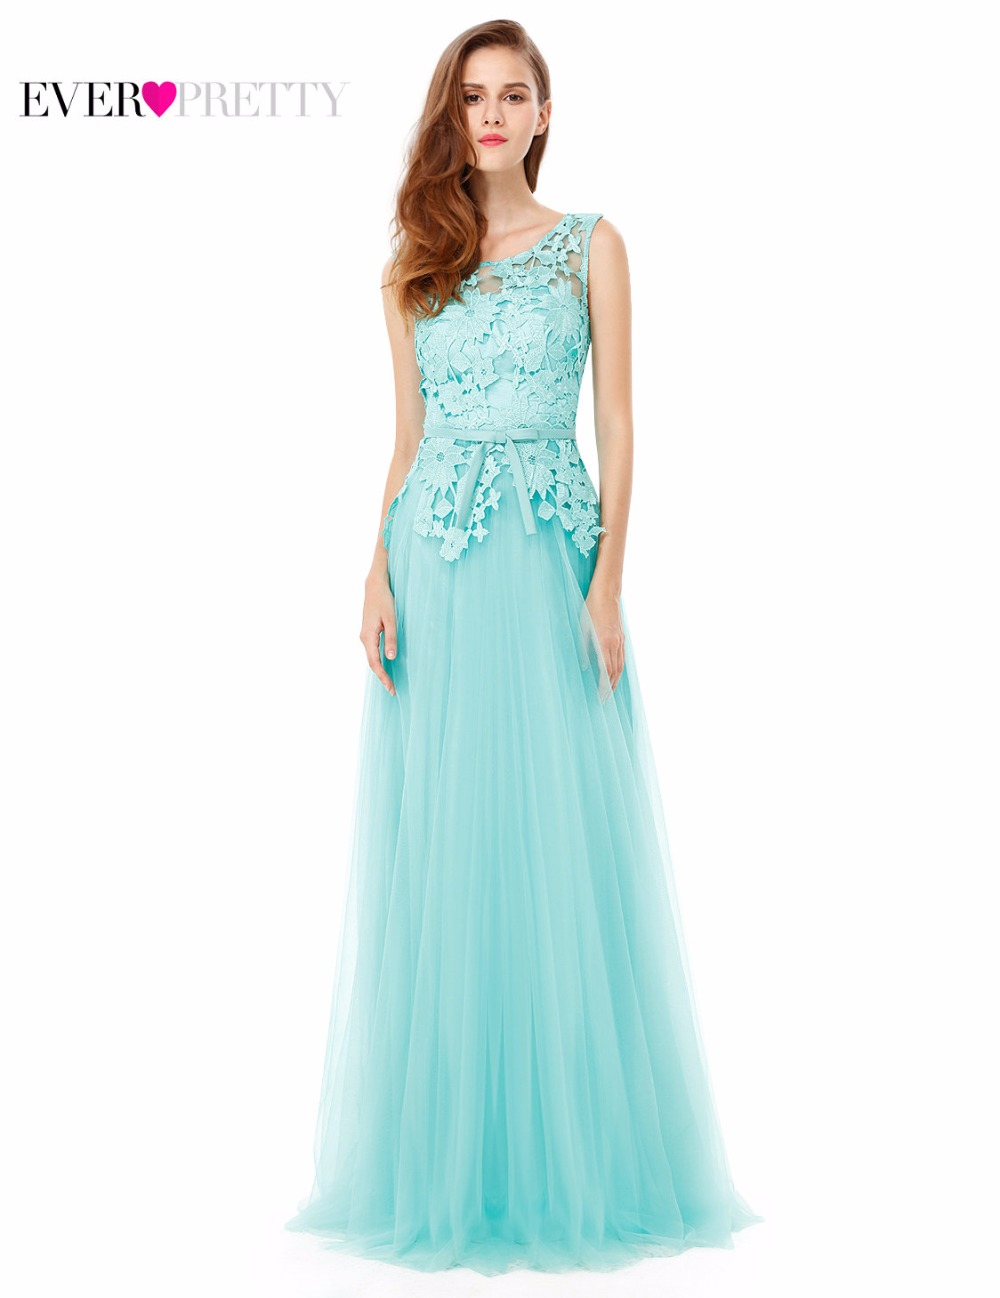 Fine Sleeveless Party Dresses Elaboration - All Wedding Dresses ...